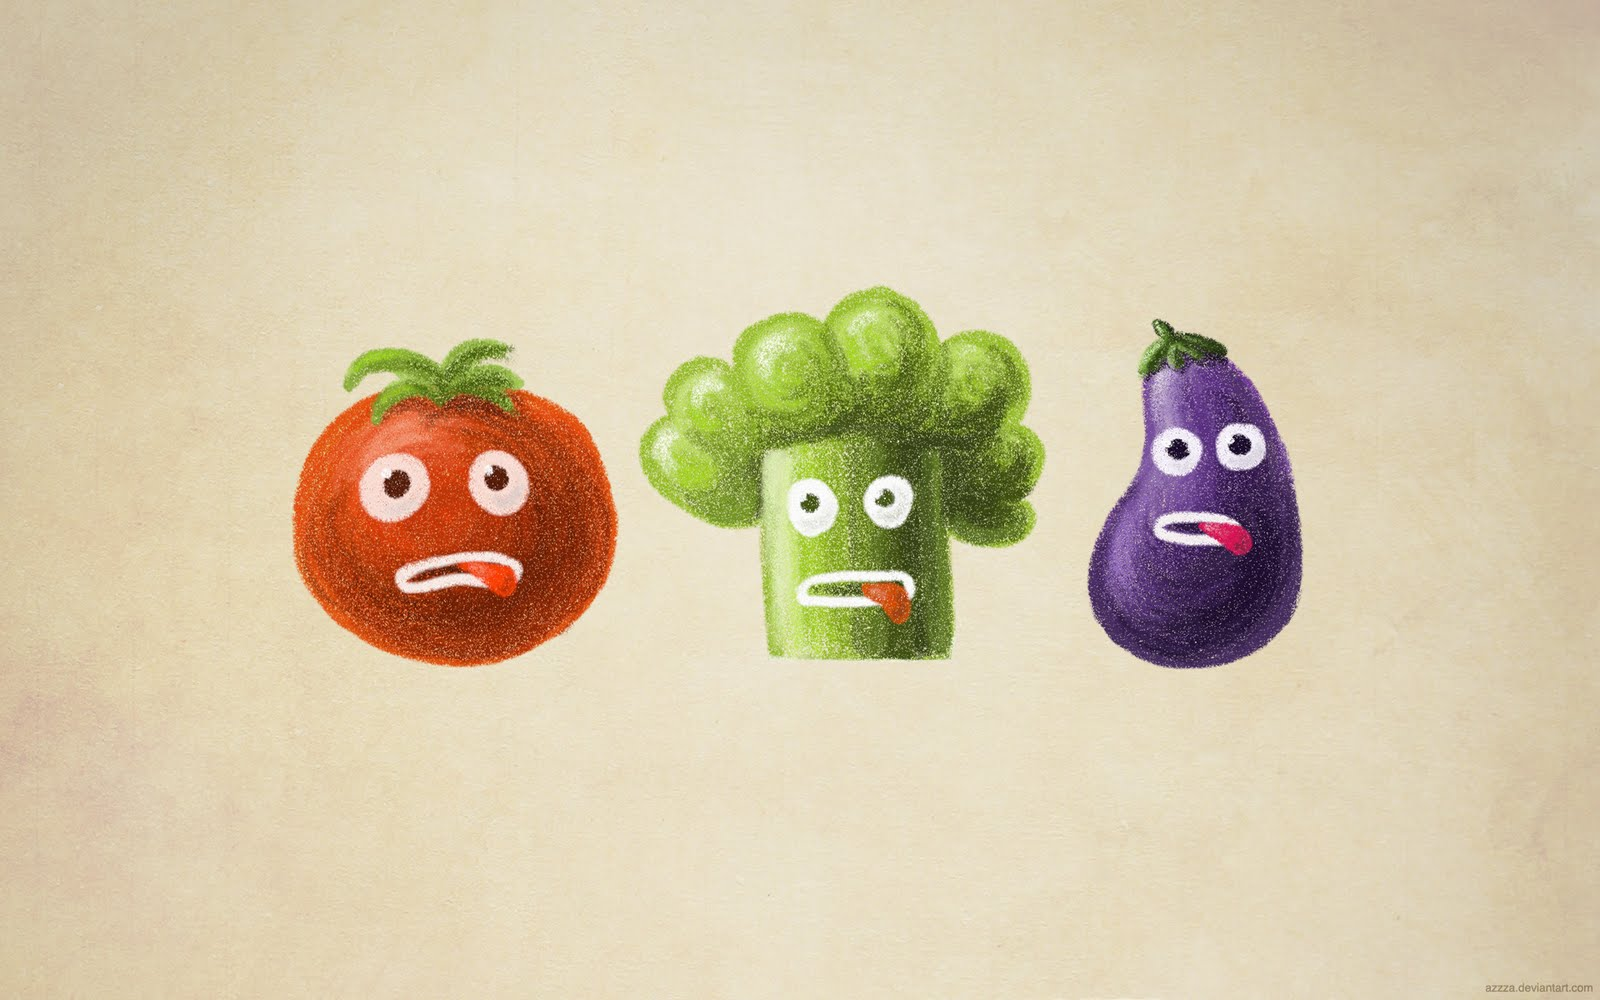 Funny vegetables wallpaper - cute stressed cartoon tomato, broccoli and eggplant.